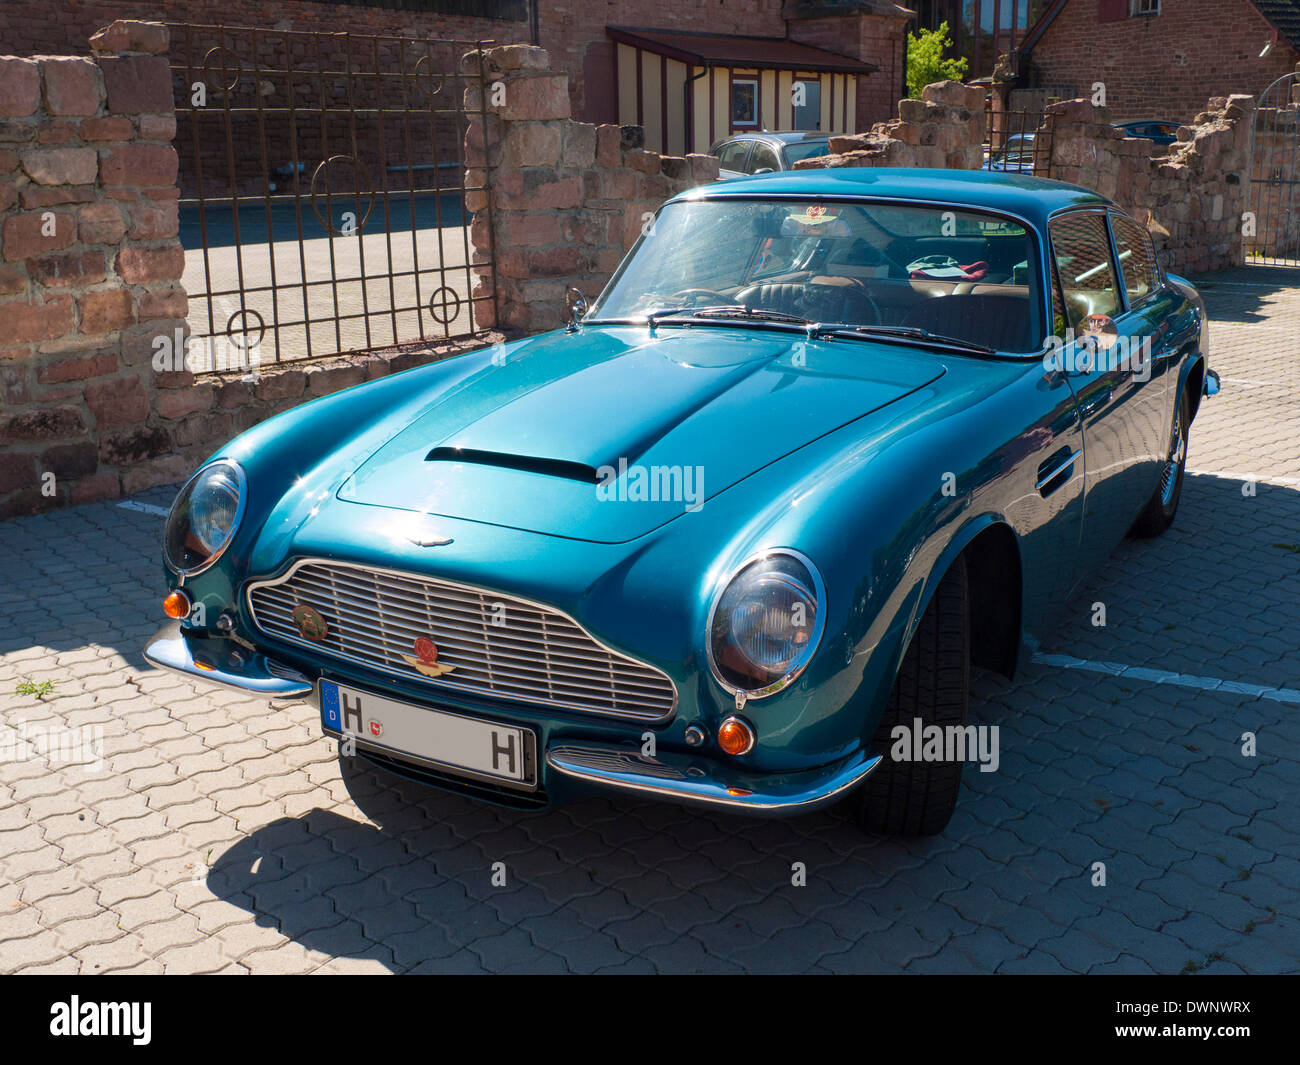 Aston Martin DB6 MKII Saloon, built in 1969-1970, Hesse, Germany - Stock Image